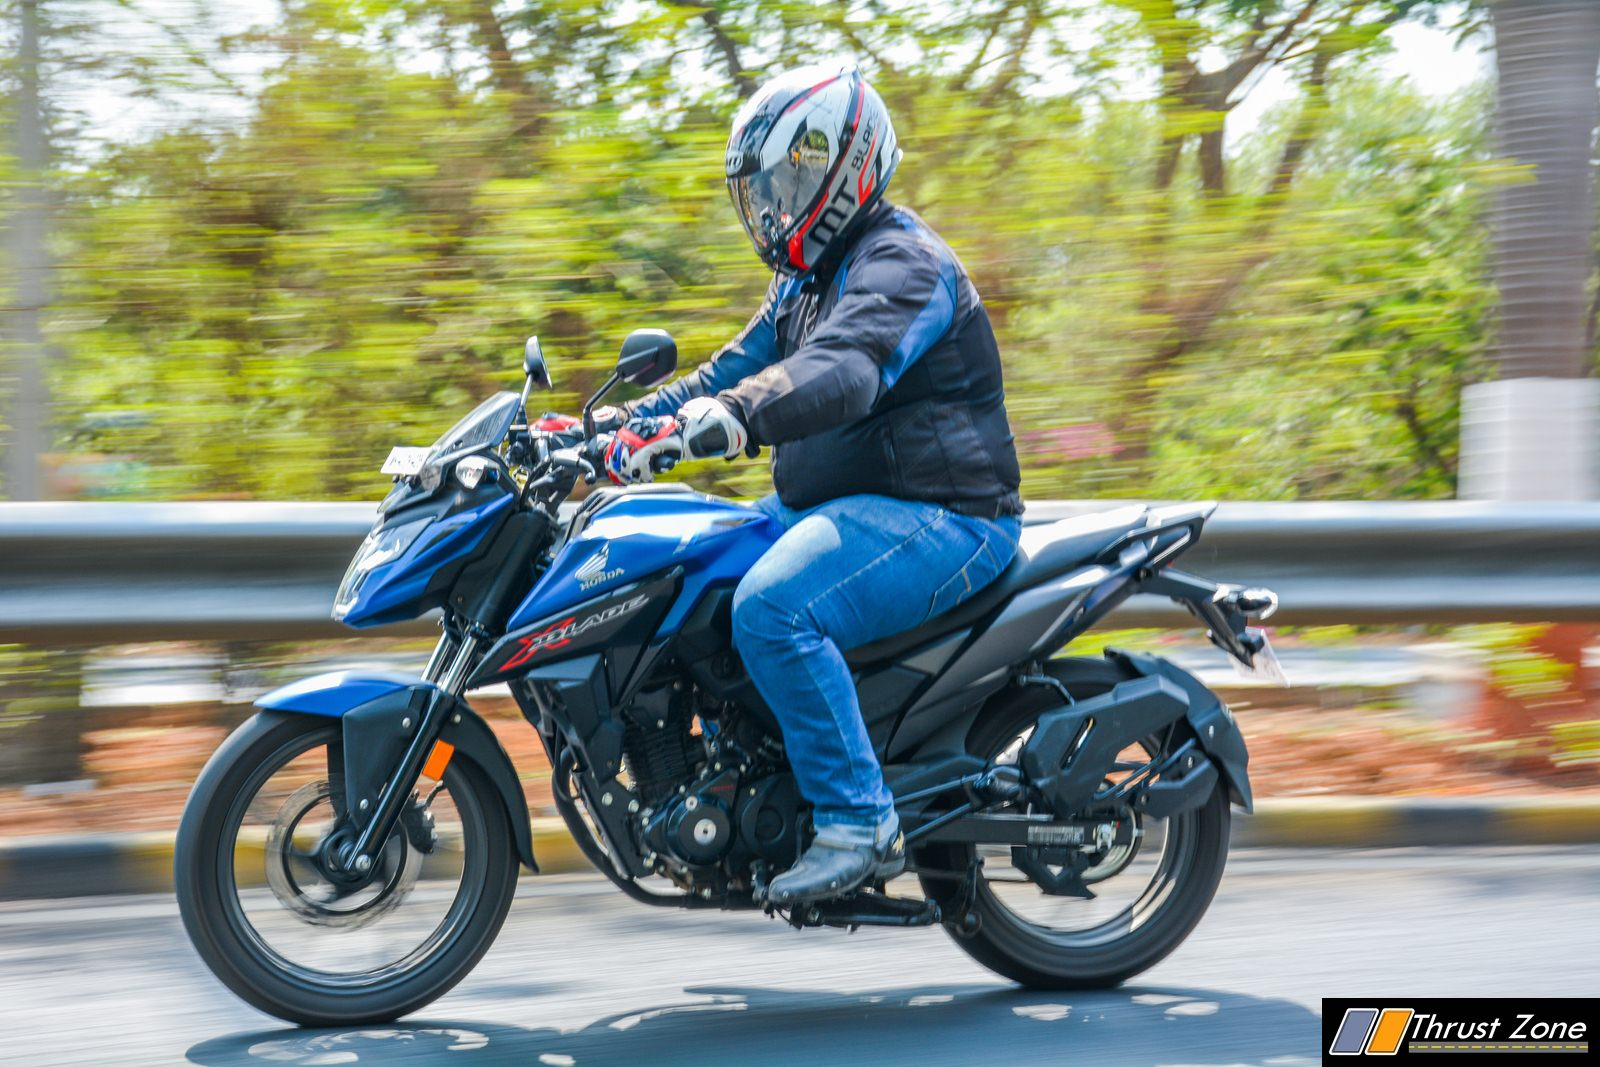 https://www.thrustzone.com/wp-content/uploads/2018/05/2019-Honda-XBlade-160-Review-3.jpg